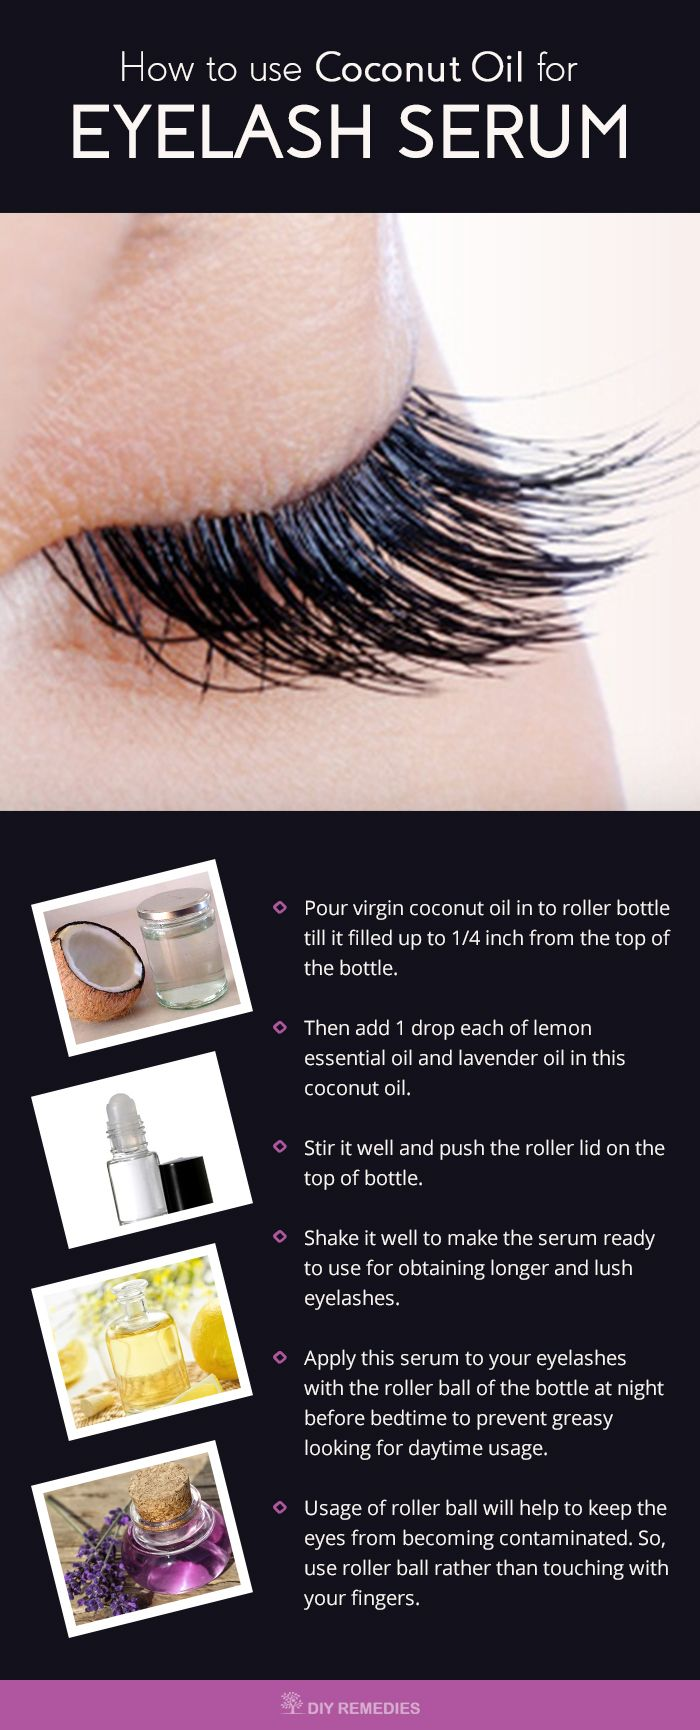 How to use Coconut Oil for Eyelashes: